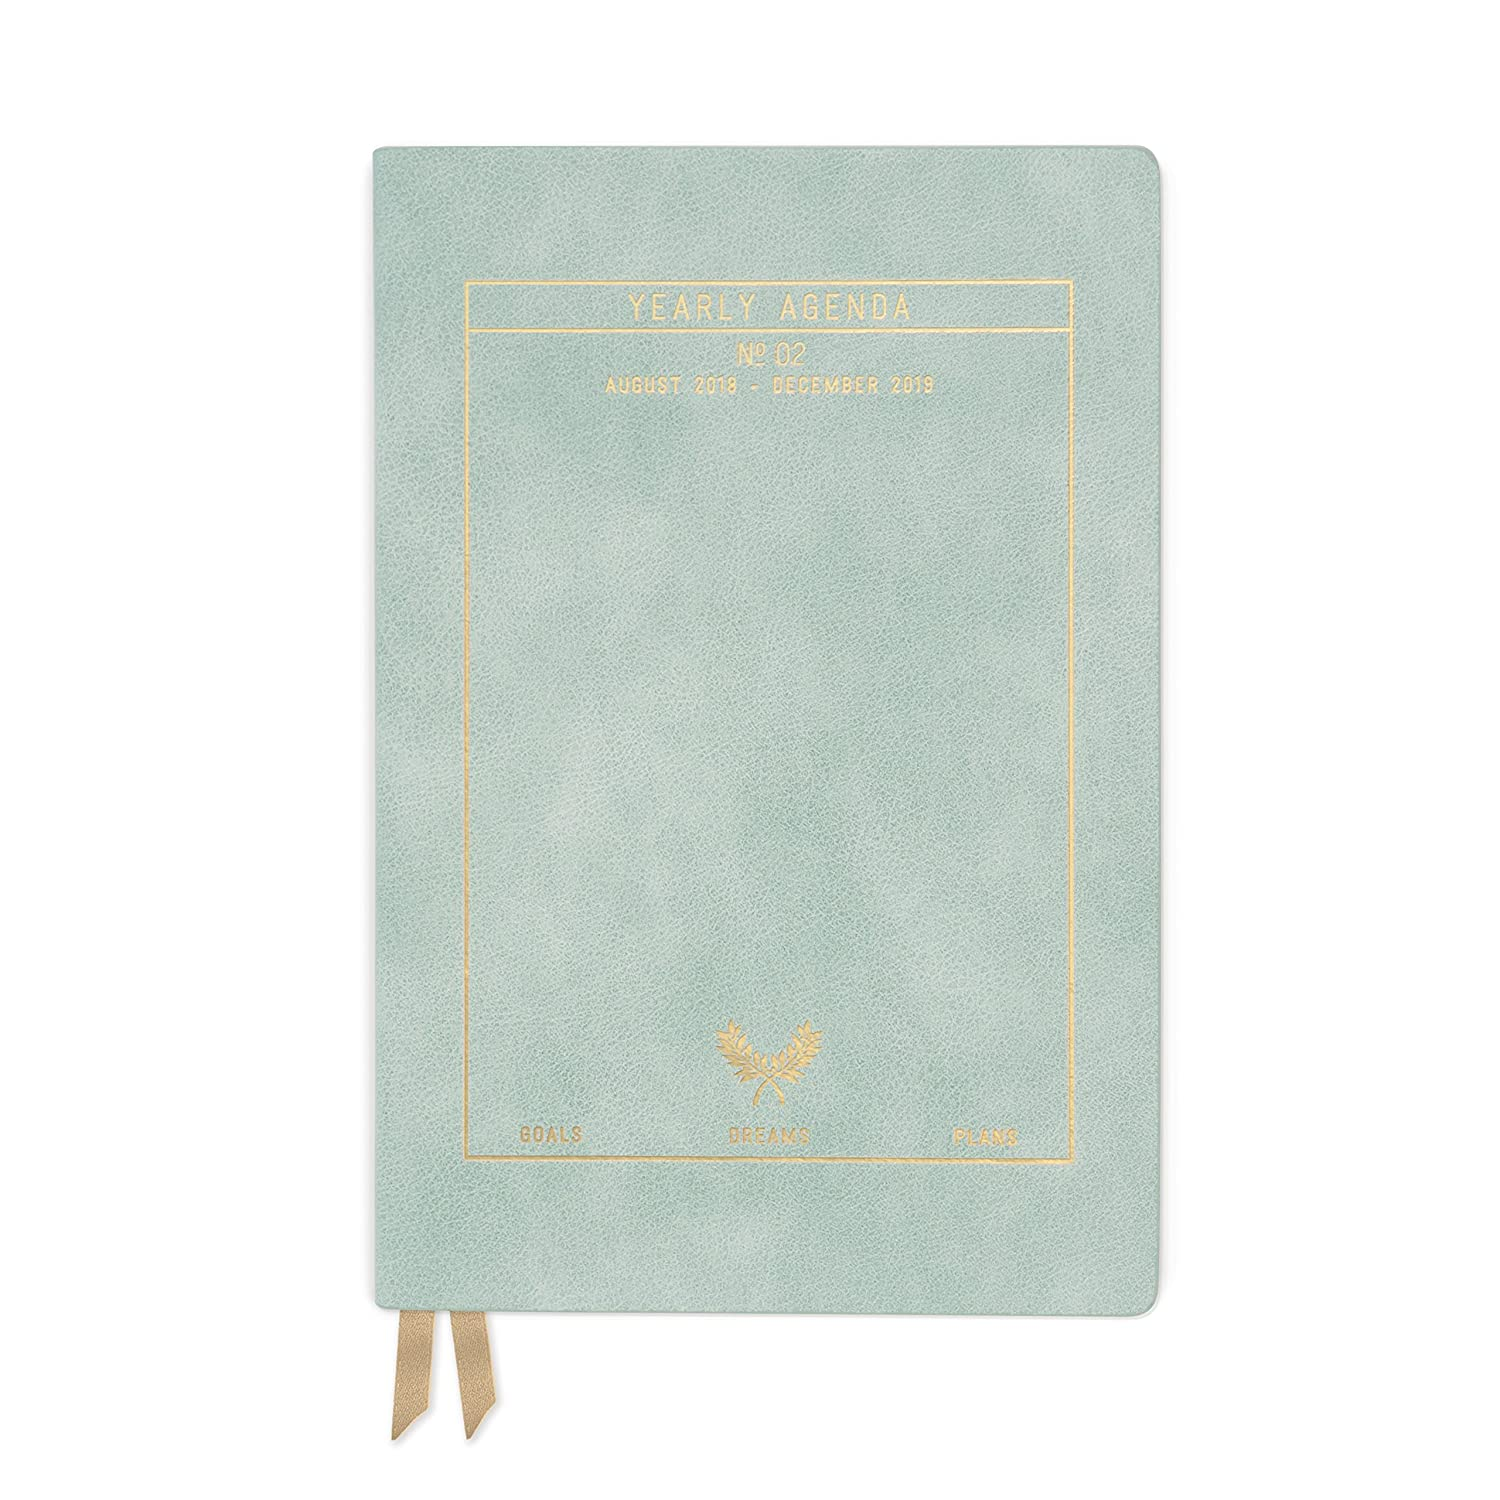 DesignWorks Ink Soft Cover Vegan Leather 17-Month Medium Agenda Book, Blush- Plans and Goals